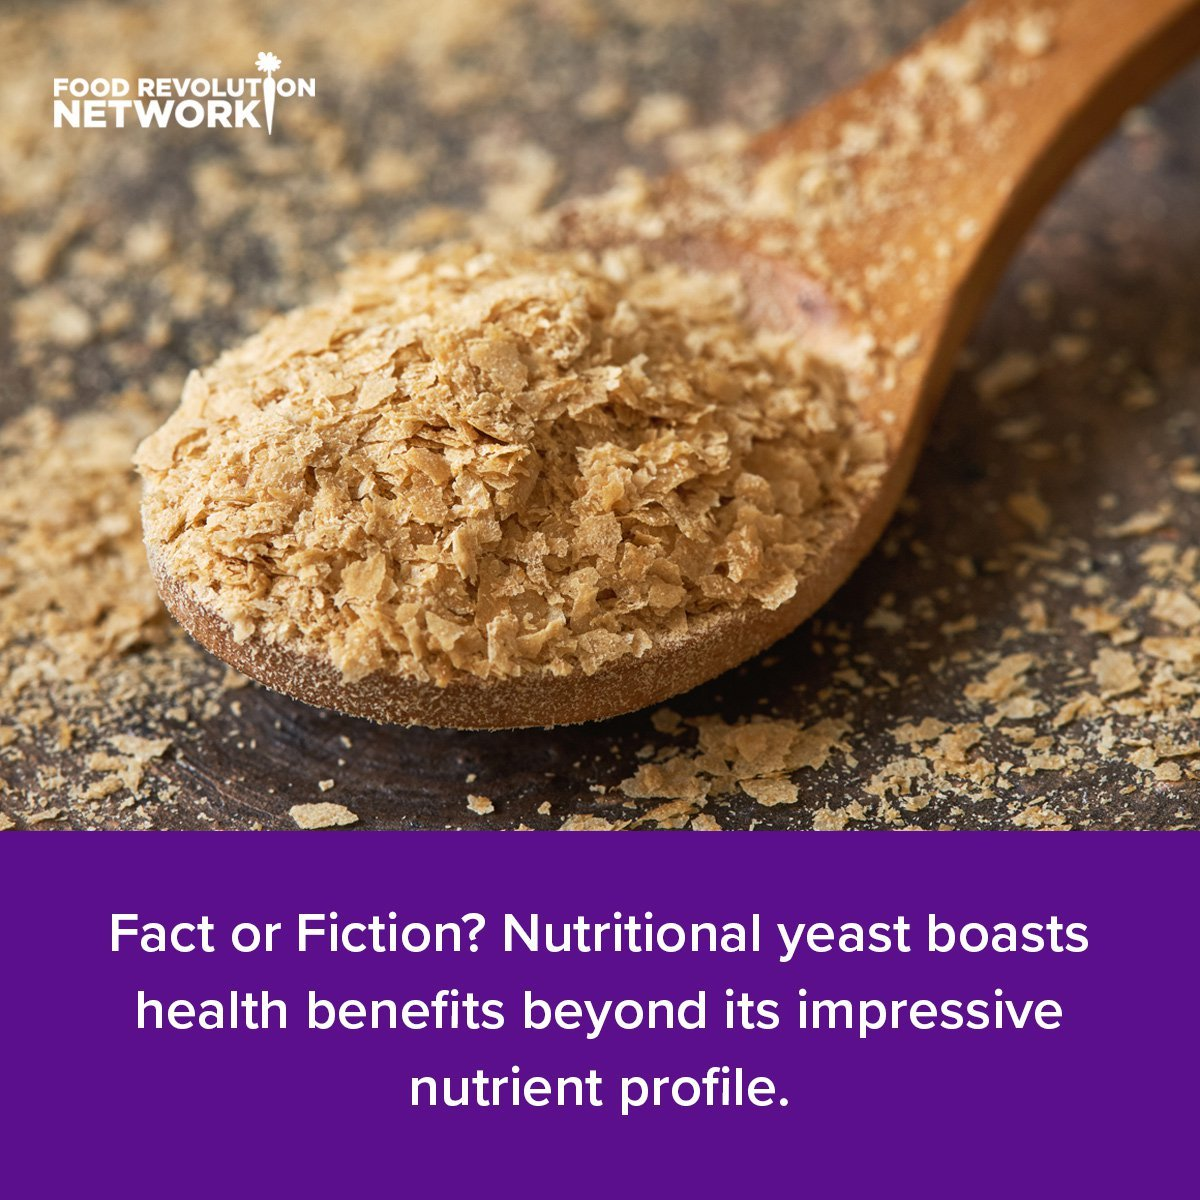 Fact or Fiction? Nutritional yeast boasts health benefits beyond its impressive nutrient profile.